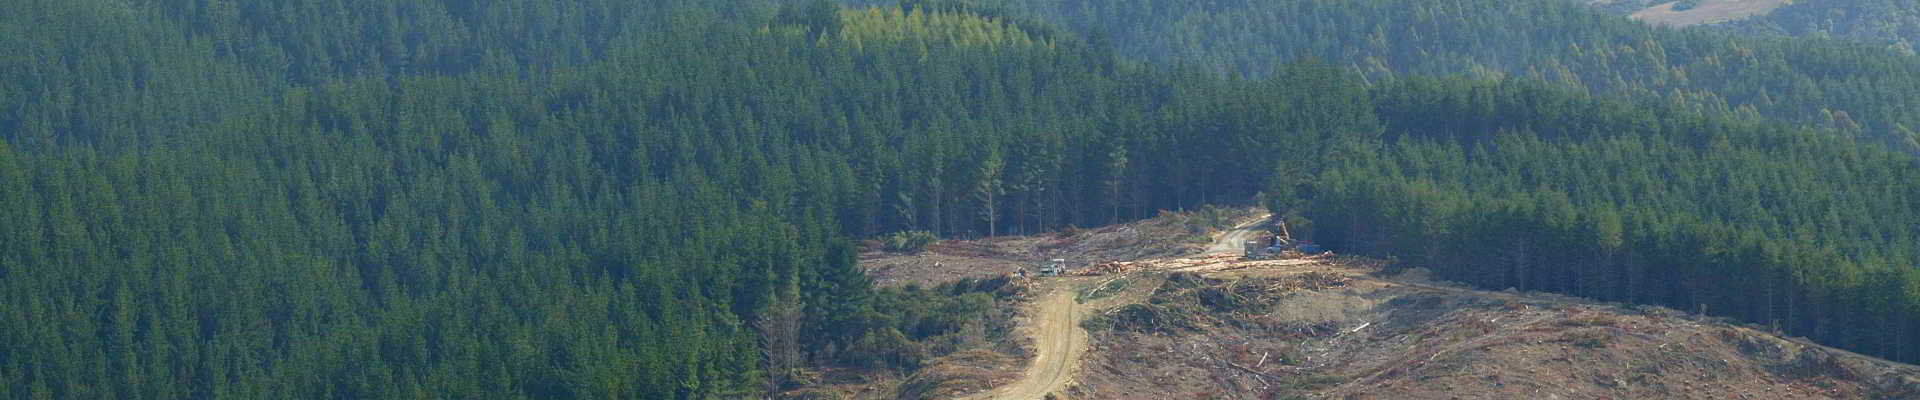 BYB Forestry Harvesting 001 1920 web